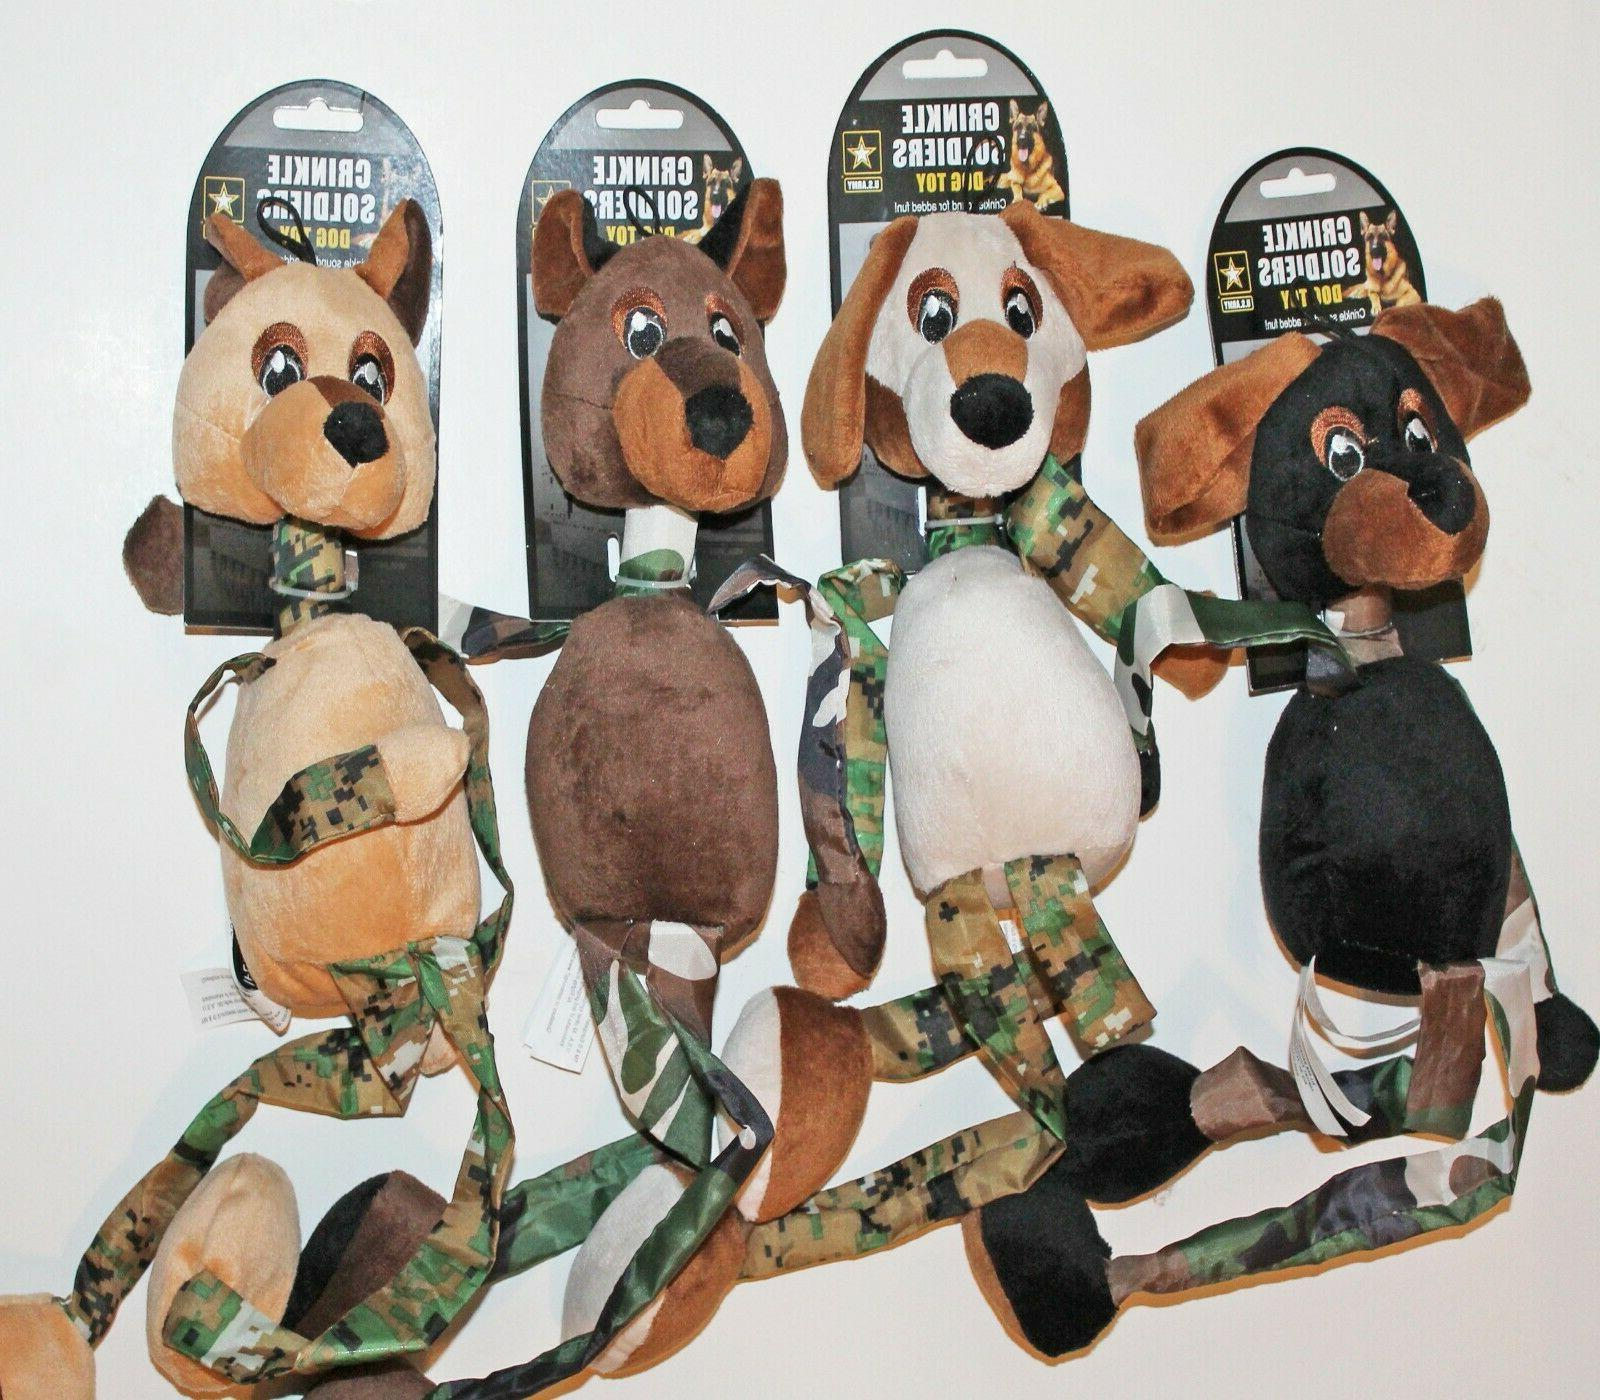 clearance 22 plush crinkle sounds soldiers u